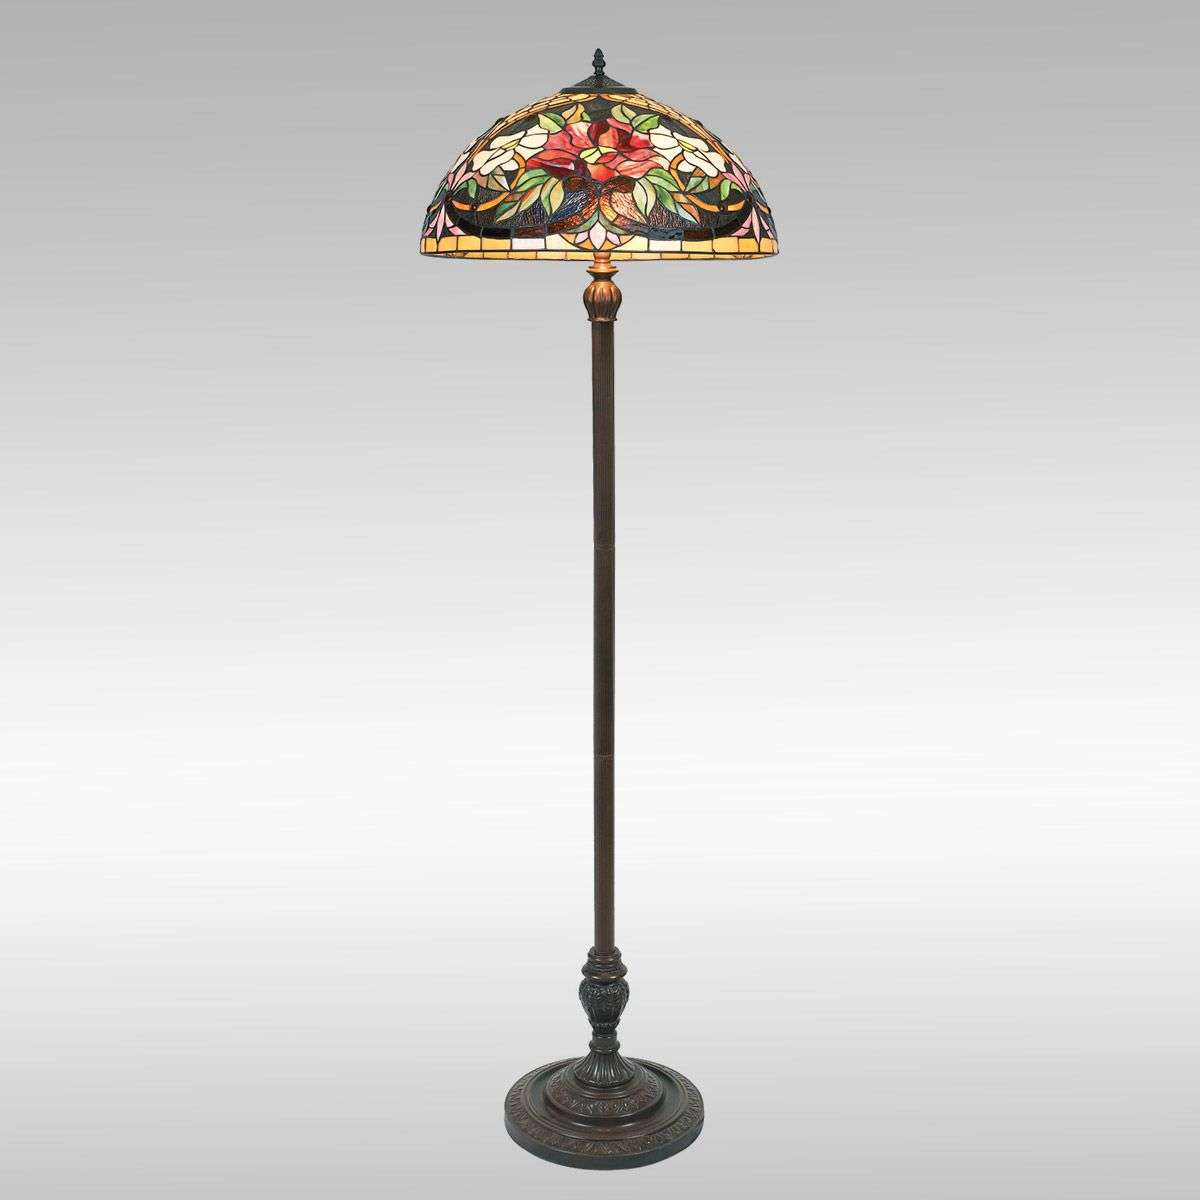 Colourful floor lamp ARIADNE in the Tiffany style-1032147-32